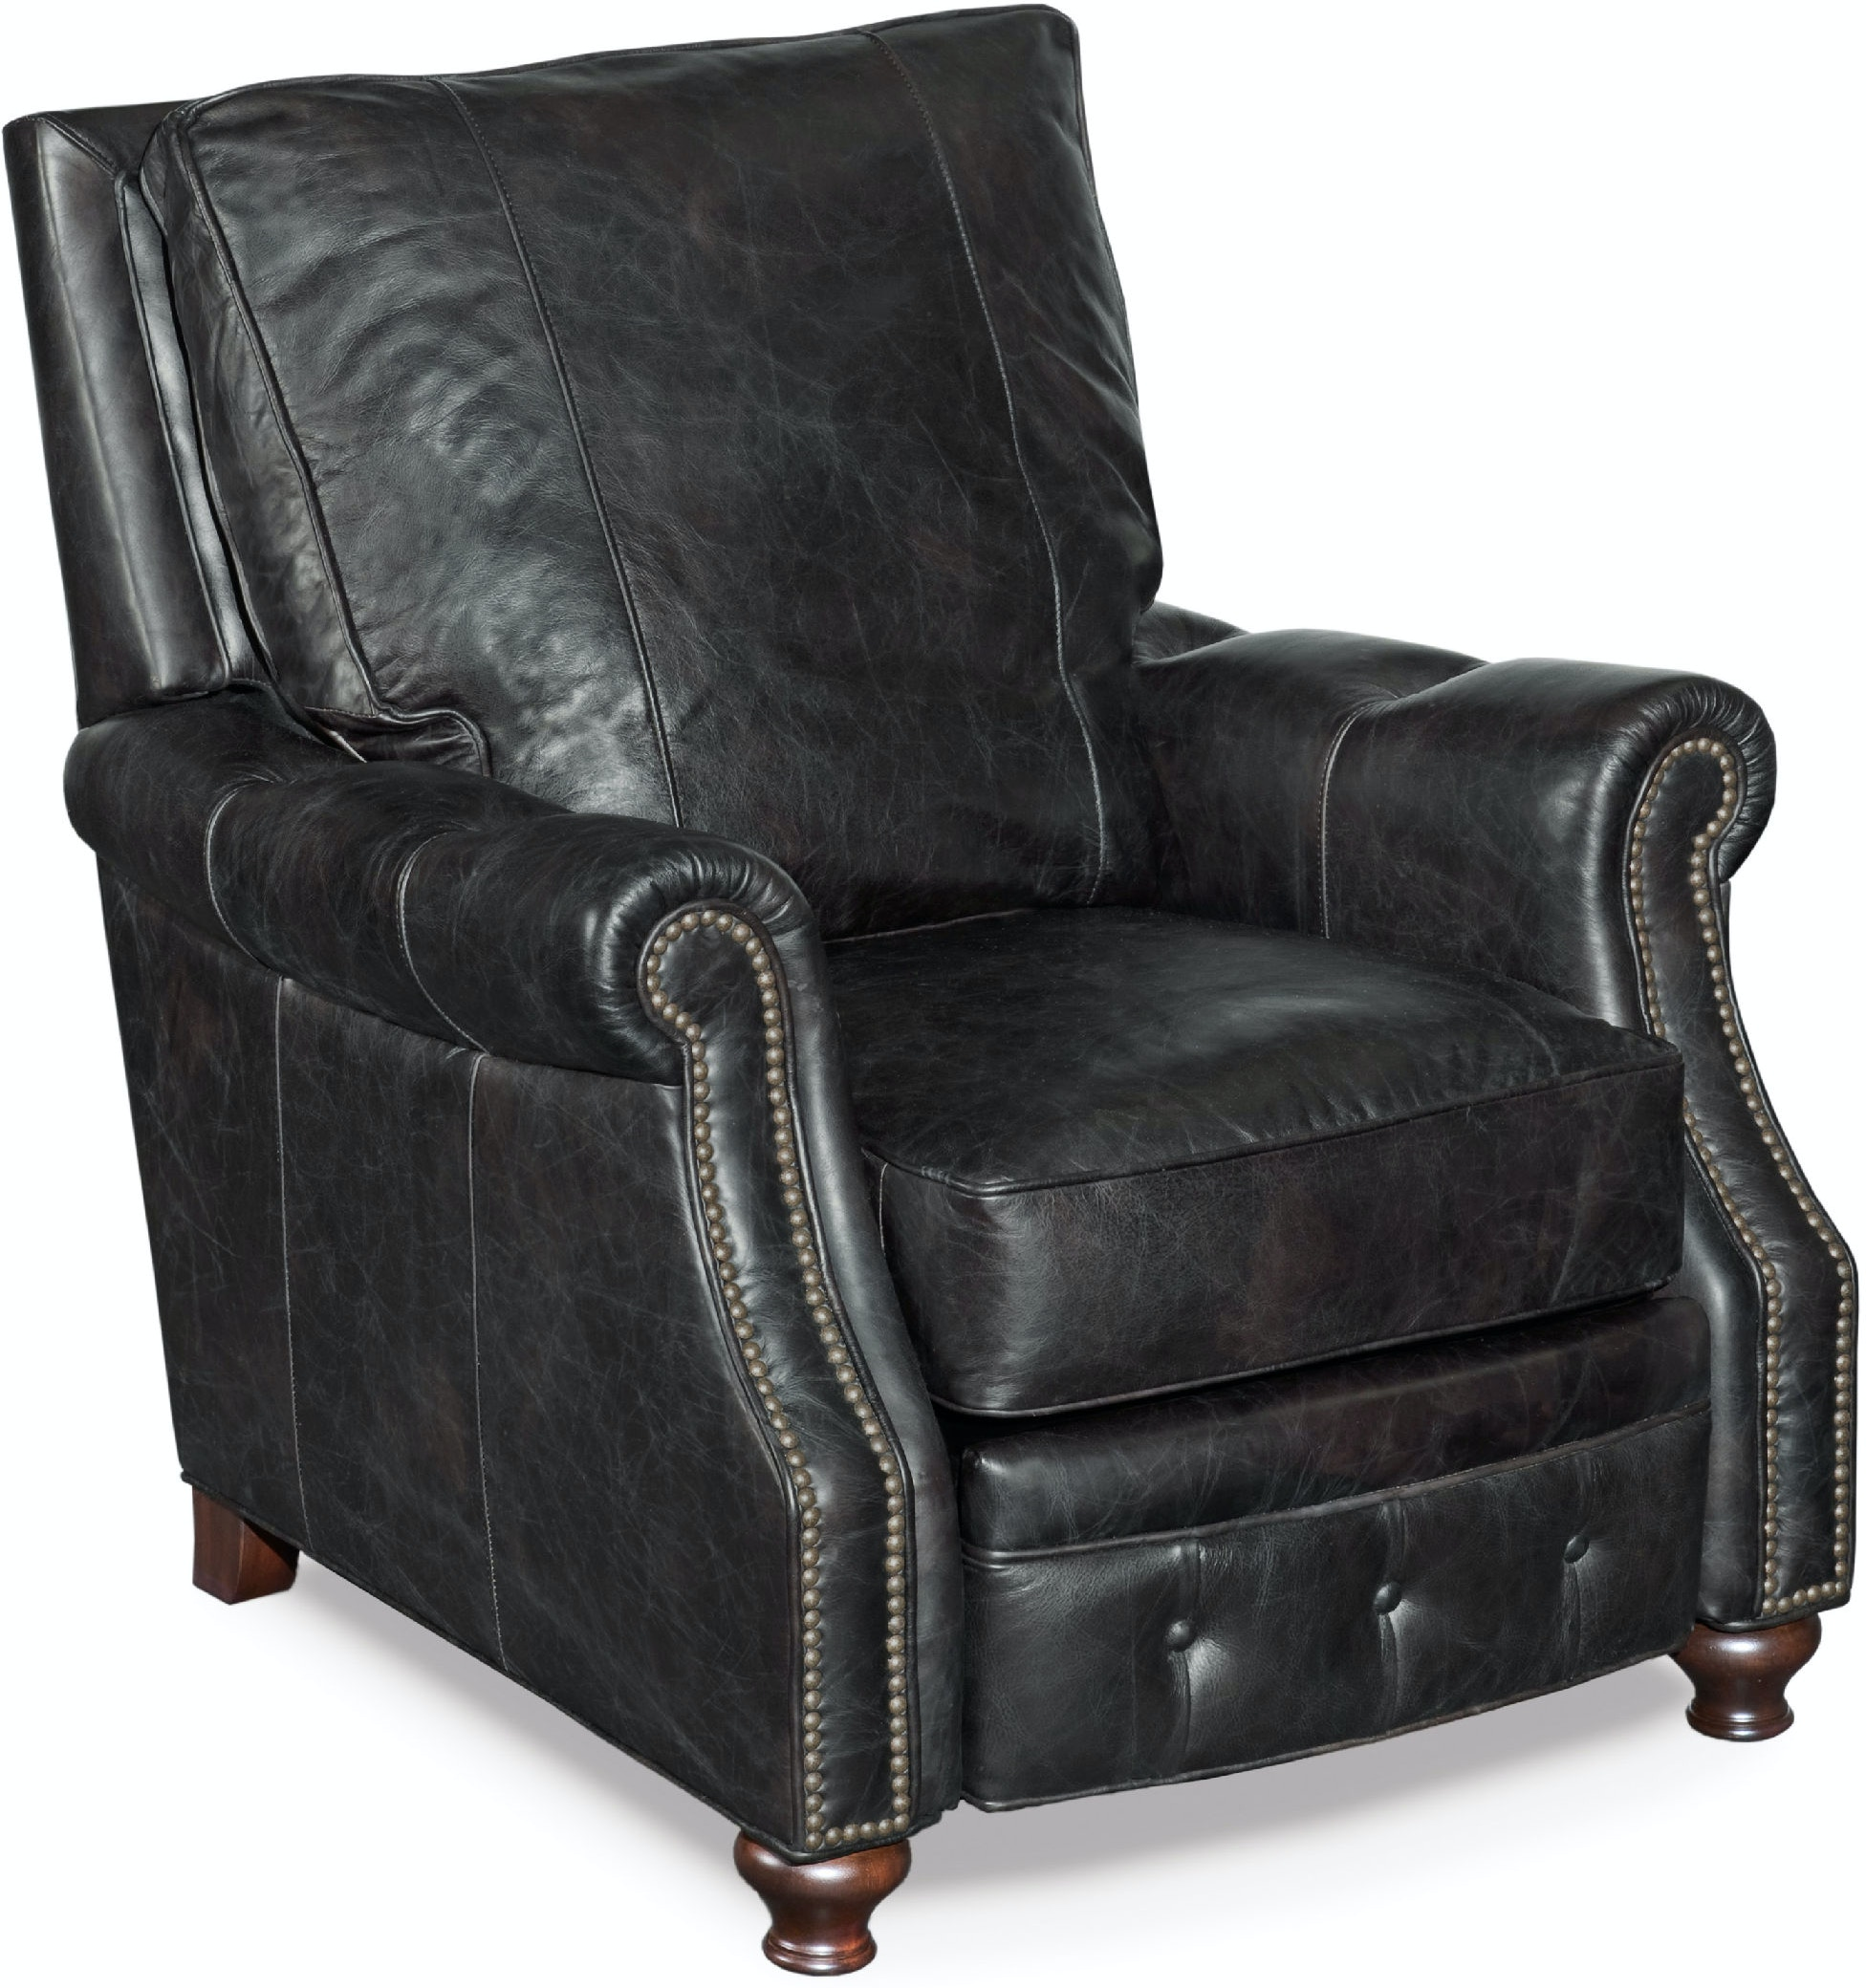 Admirable Hooker Furniture Living Room Winslow Recliner Chair Rc150 099 Gmtry Best Dining Table And Chair Ideas Images Gmtryco